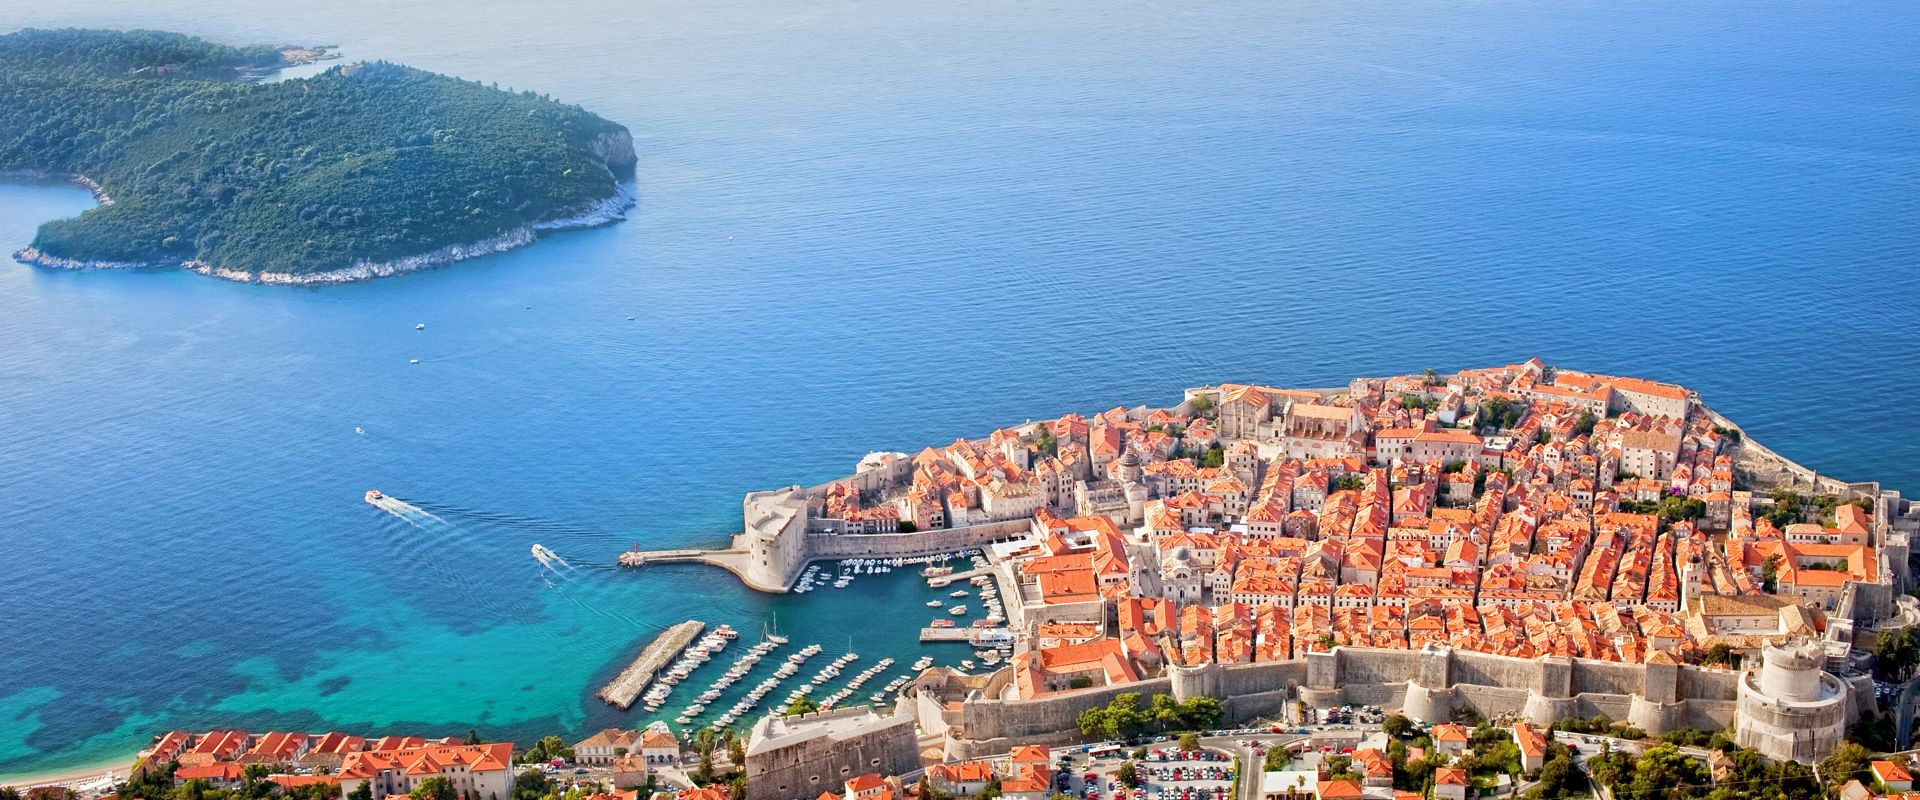 Travel to Dubrovnik, the city of Game of Thrones